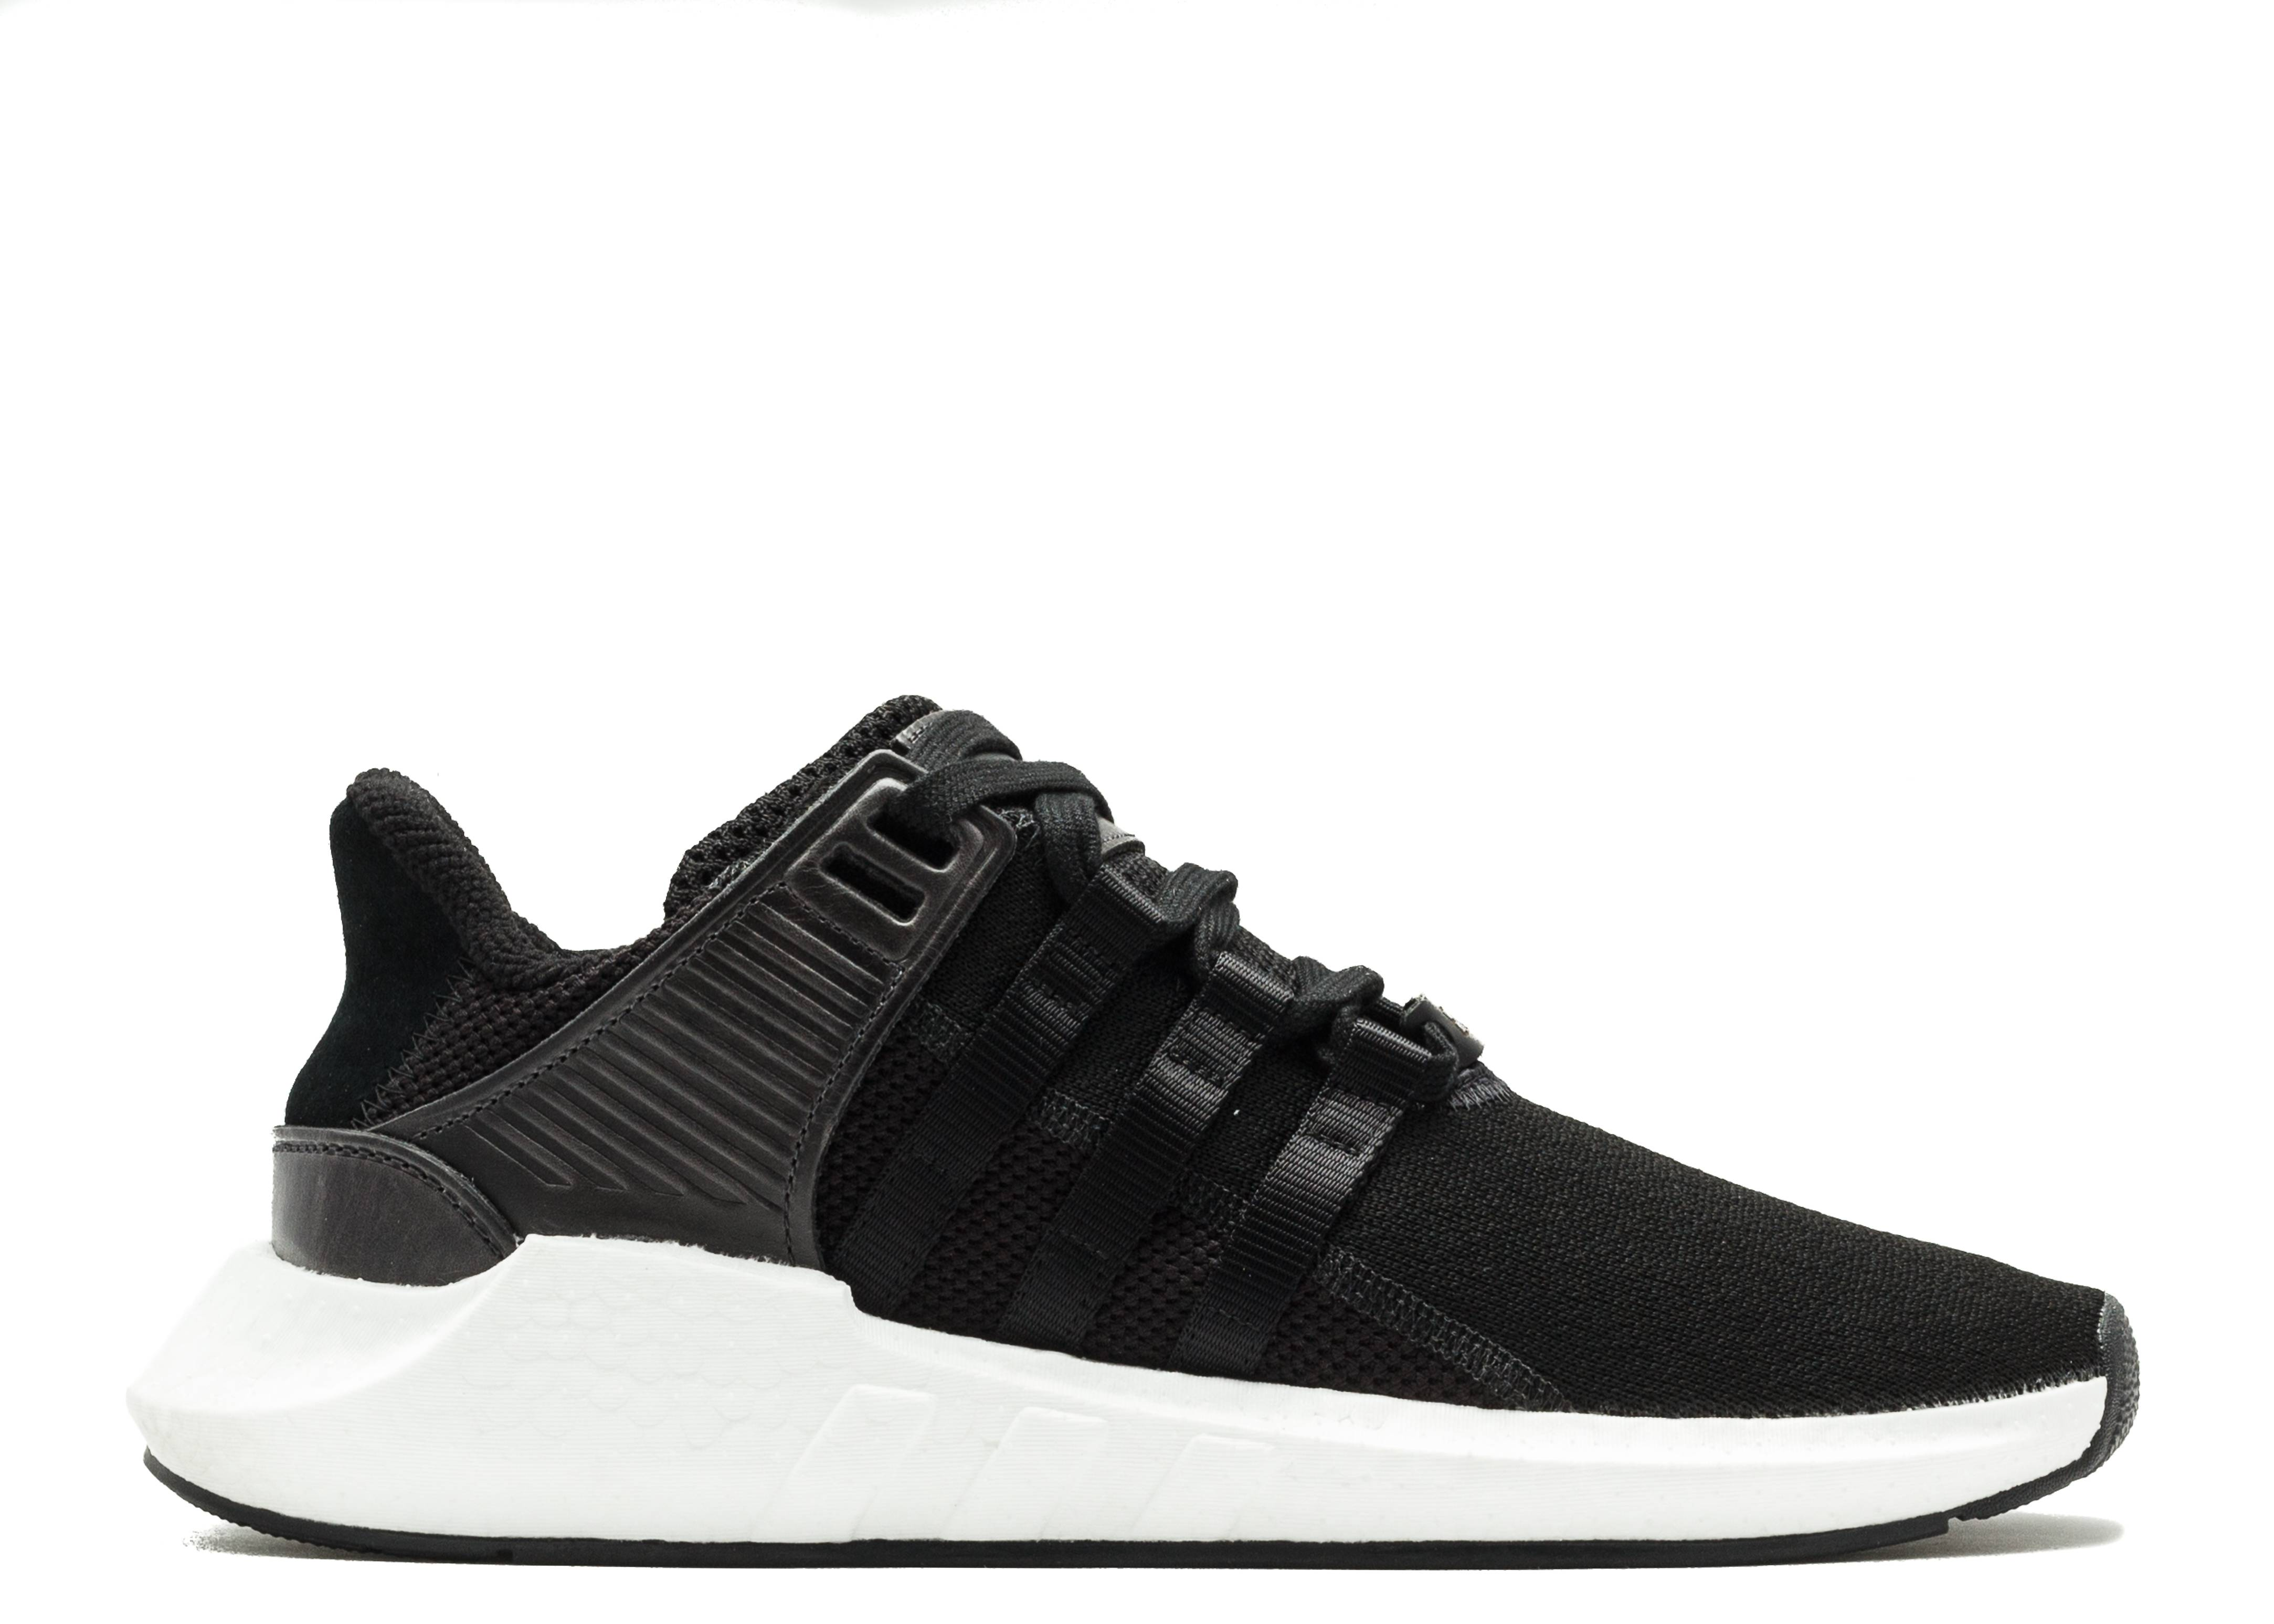 "EQT Support 93/17 'Milled Leather' ""Milled Leather"""